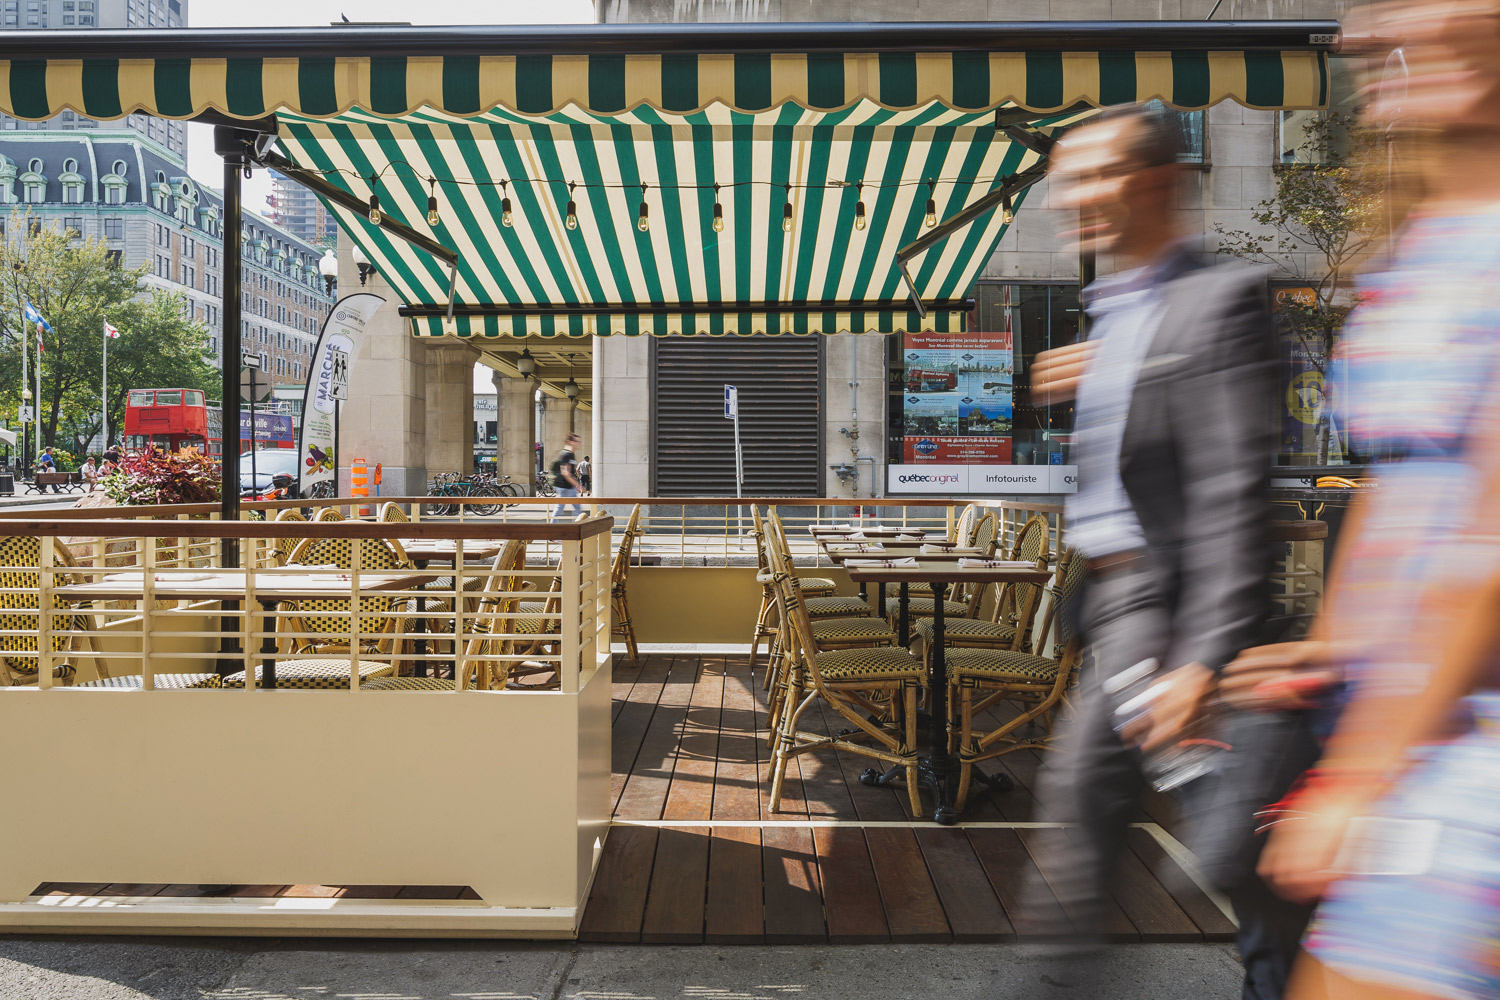 Outdoor terrace of a restaurant in downtown Montreal. Awning in white and green canvas with structure built in Ipe and white painted steel by hand.